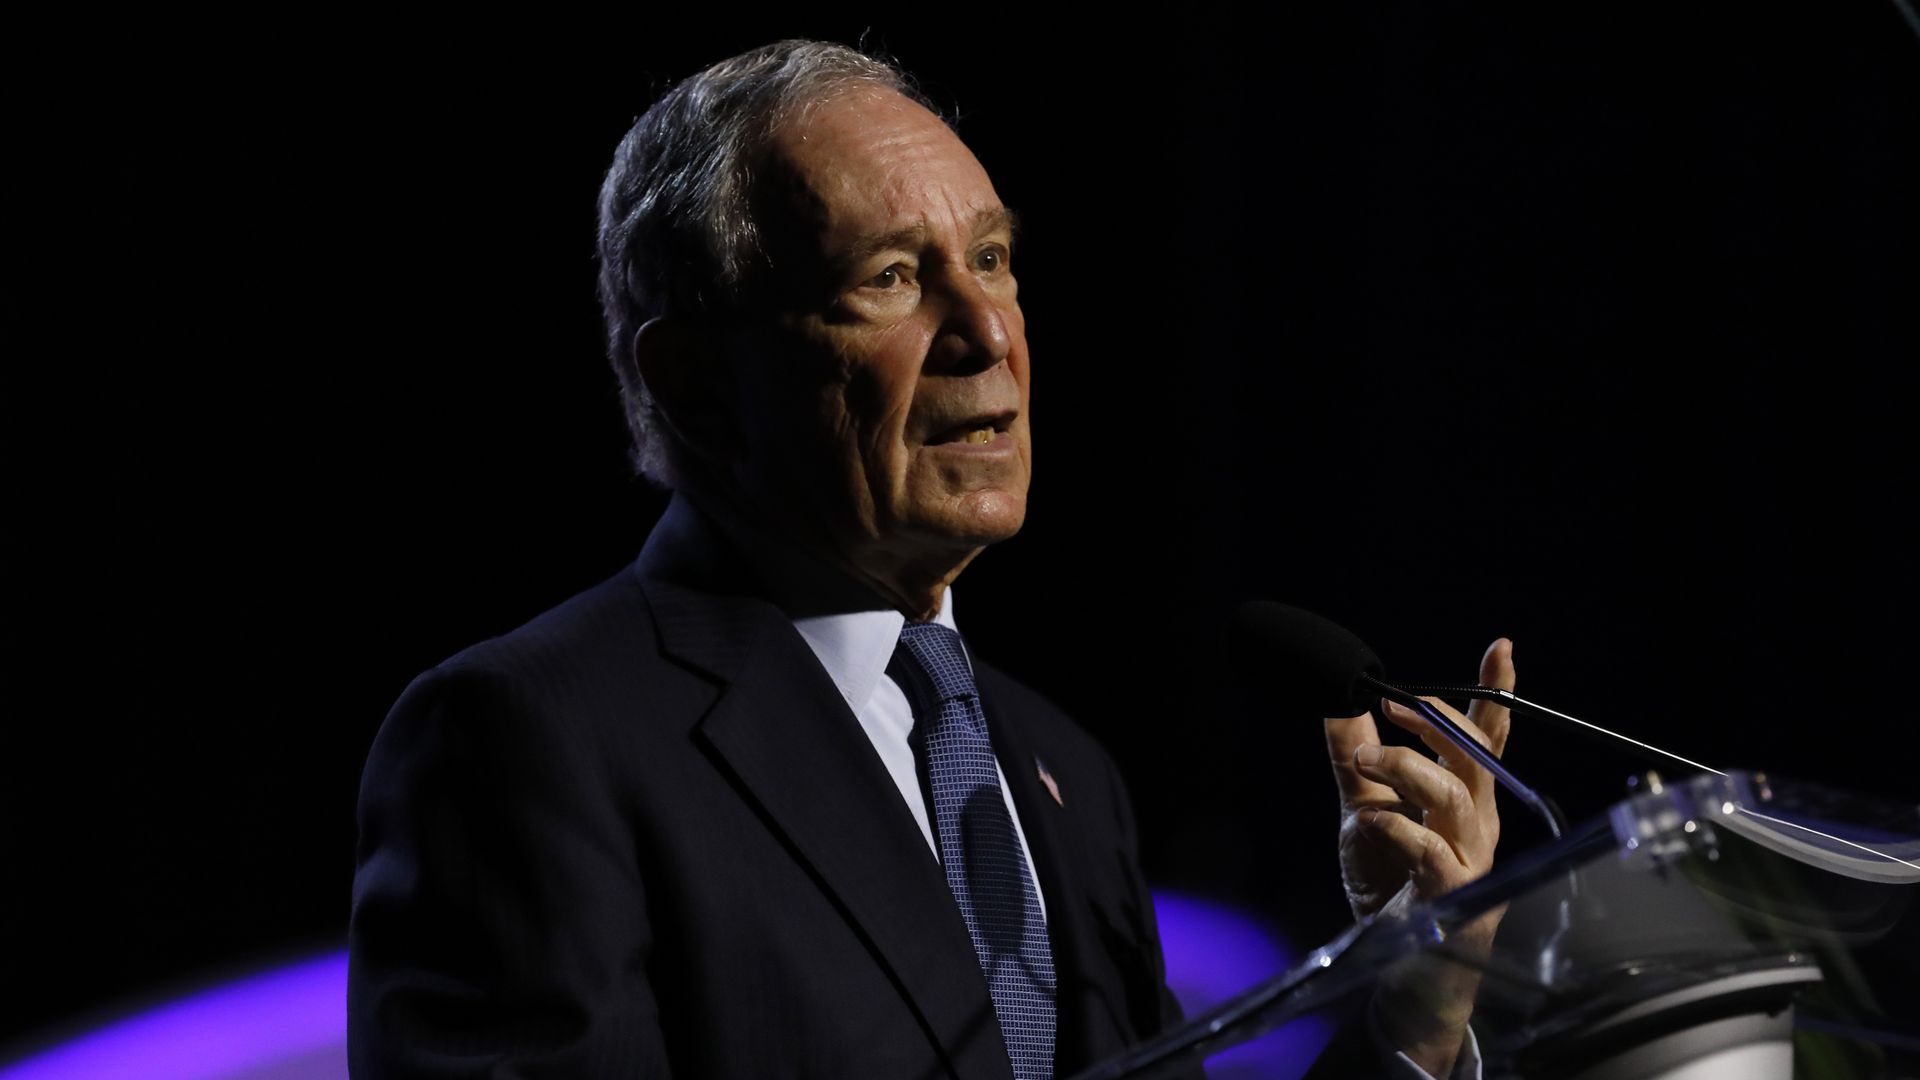 Michael Bloomberg, addresses the NAACP's 110th National Convention at Cobo Center on July 24, 2019 in Detroit, Michigan.